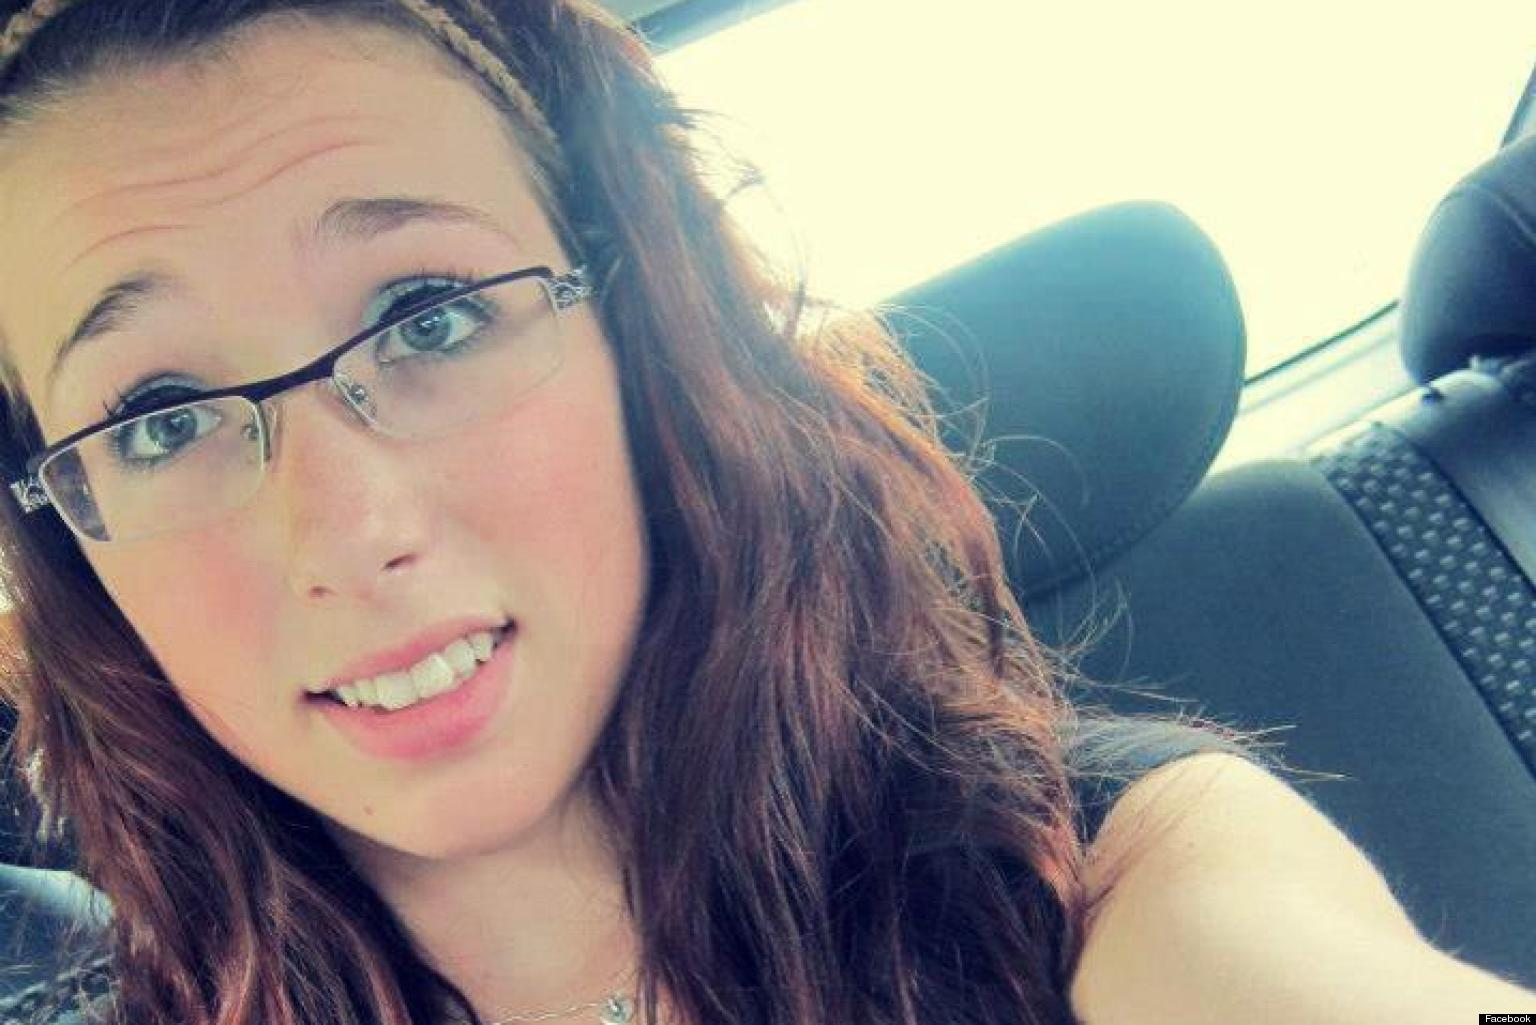 Rehtaeh Parsons Leaked Pictures 4chan